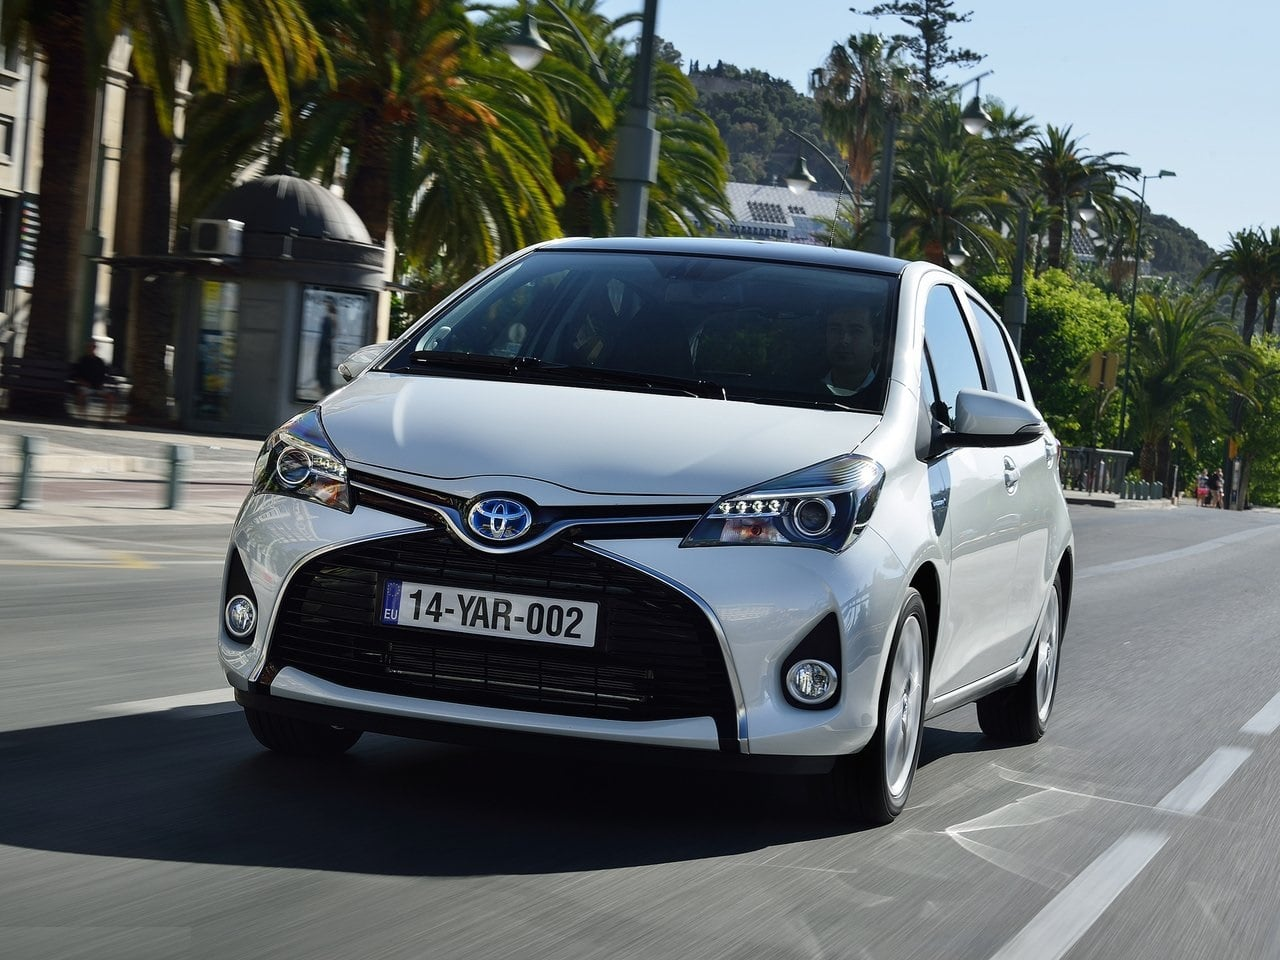 toyota yaris india launch date price specifications mileage images. Black Bedroom Furniture Sets. Home Design Ideas